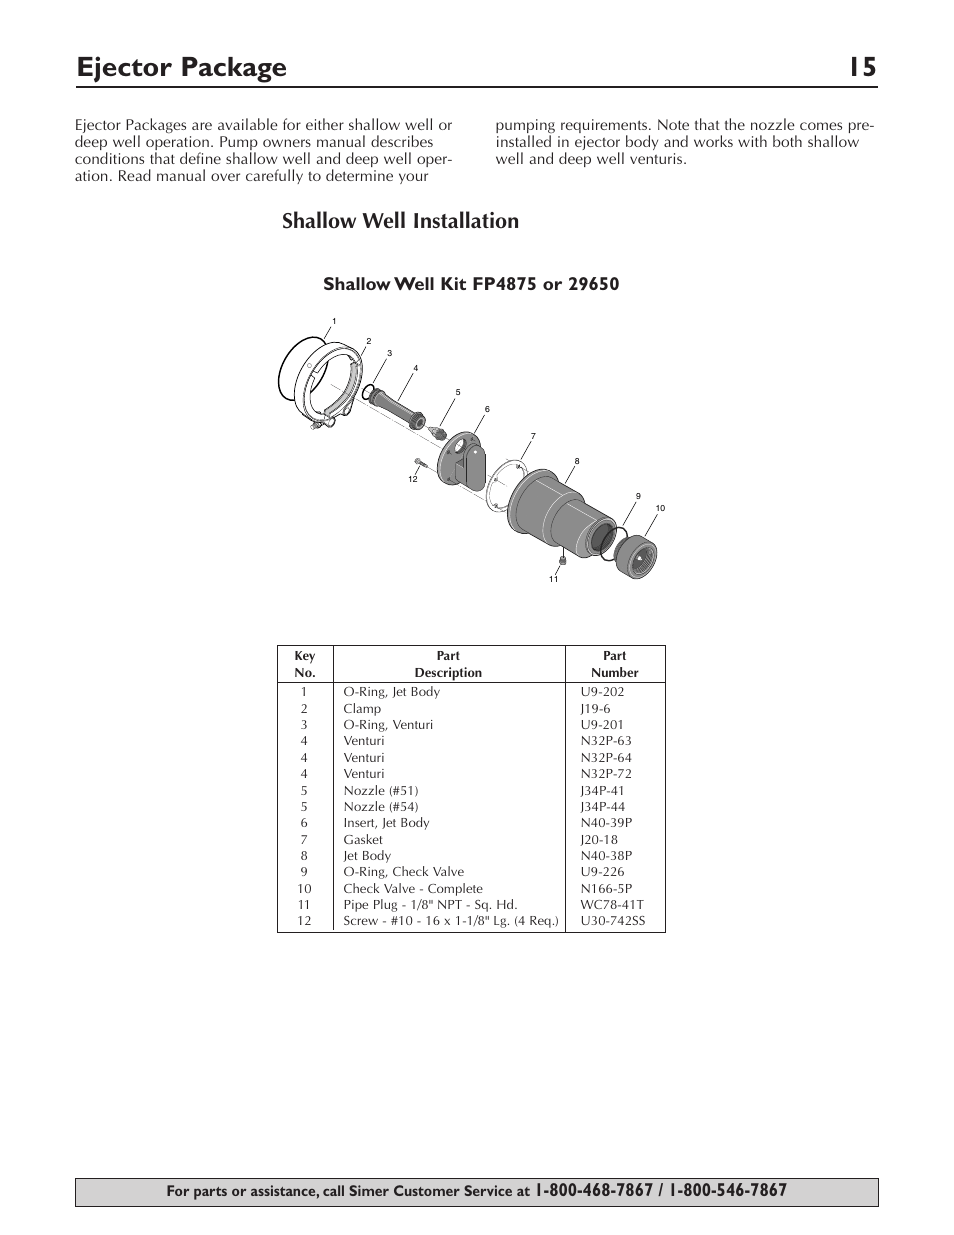 Shallow Well Pump Check Valve